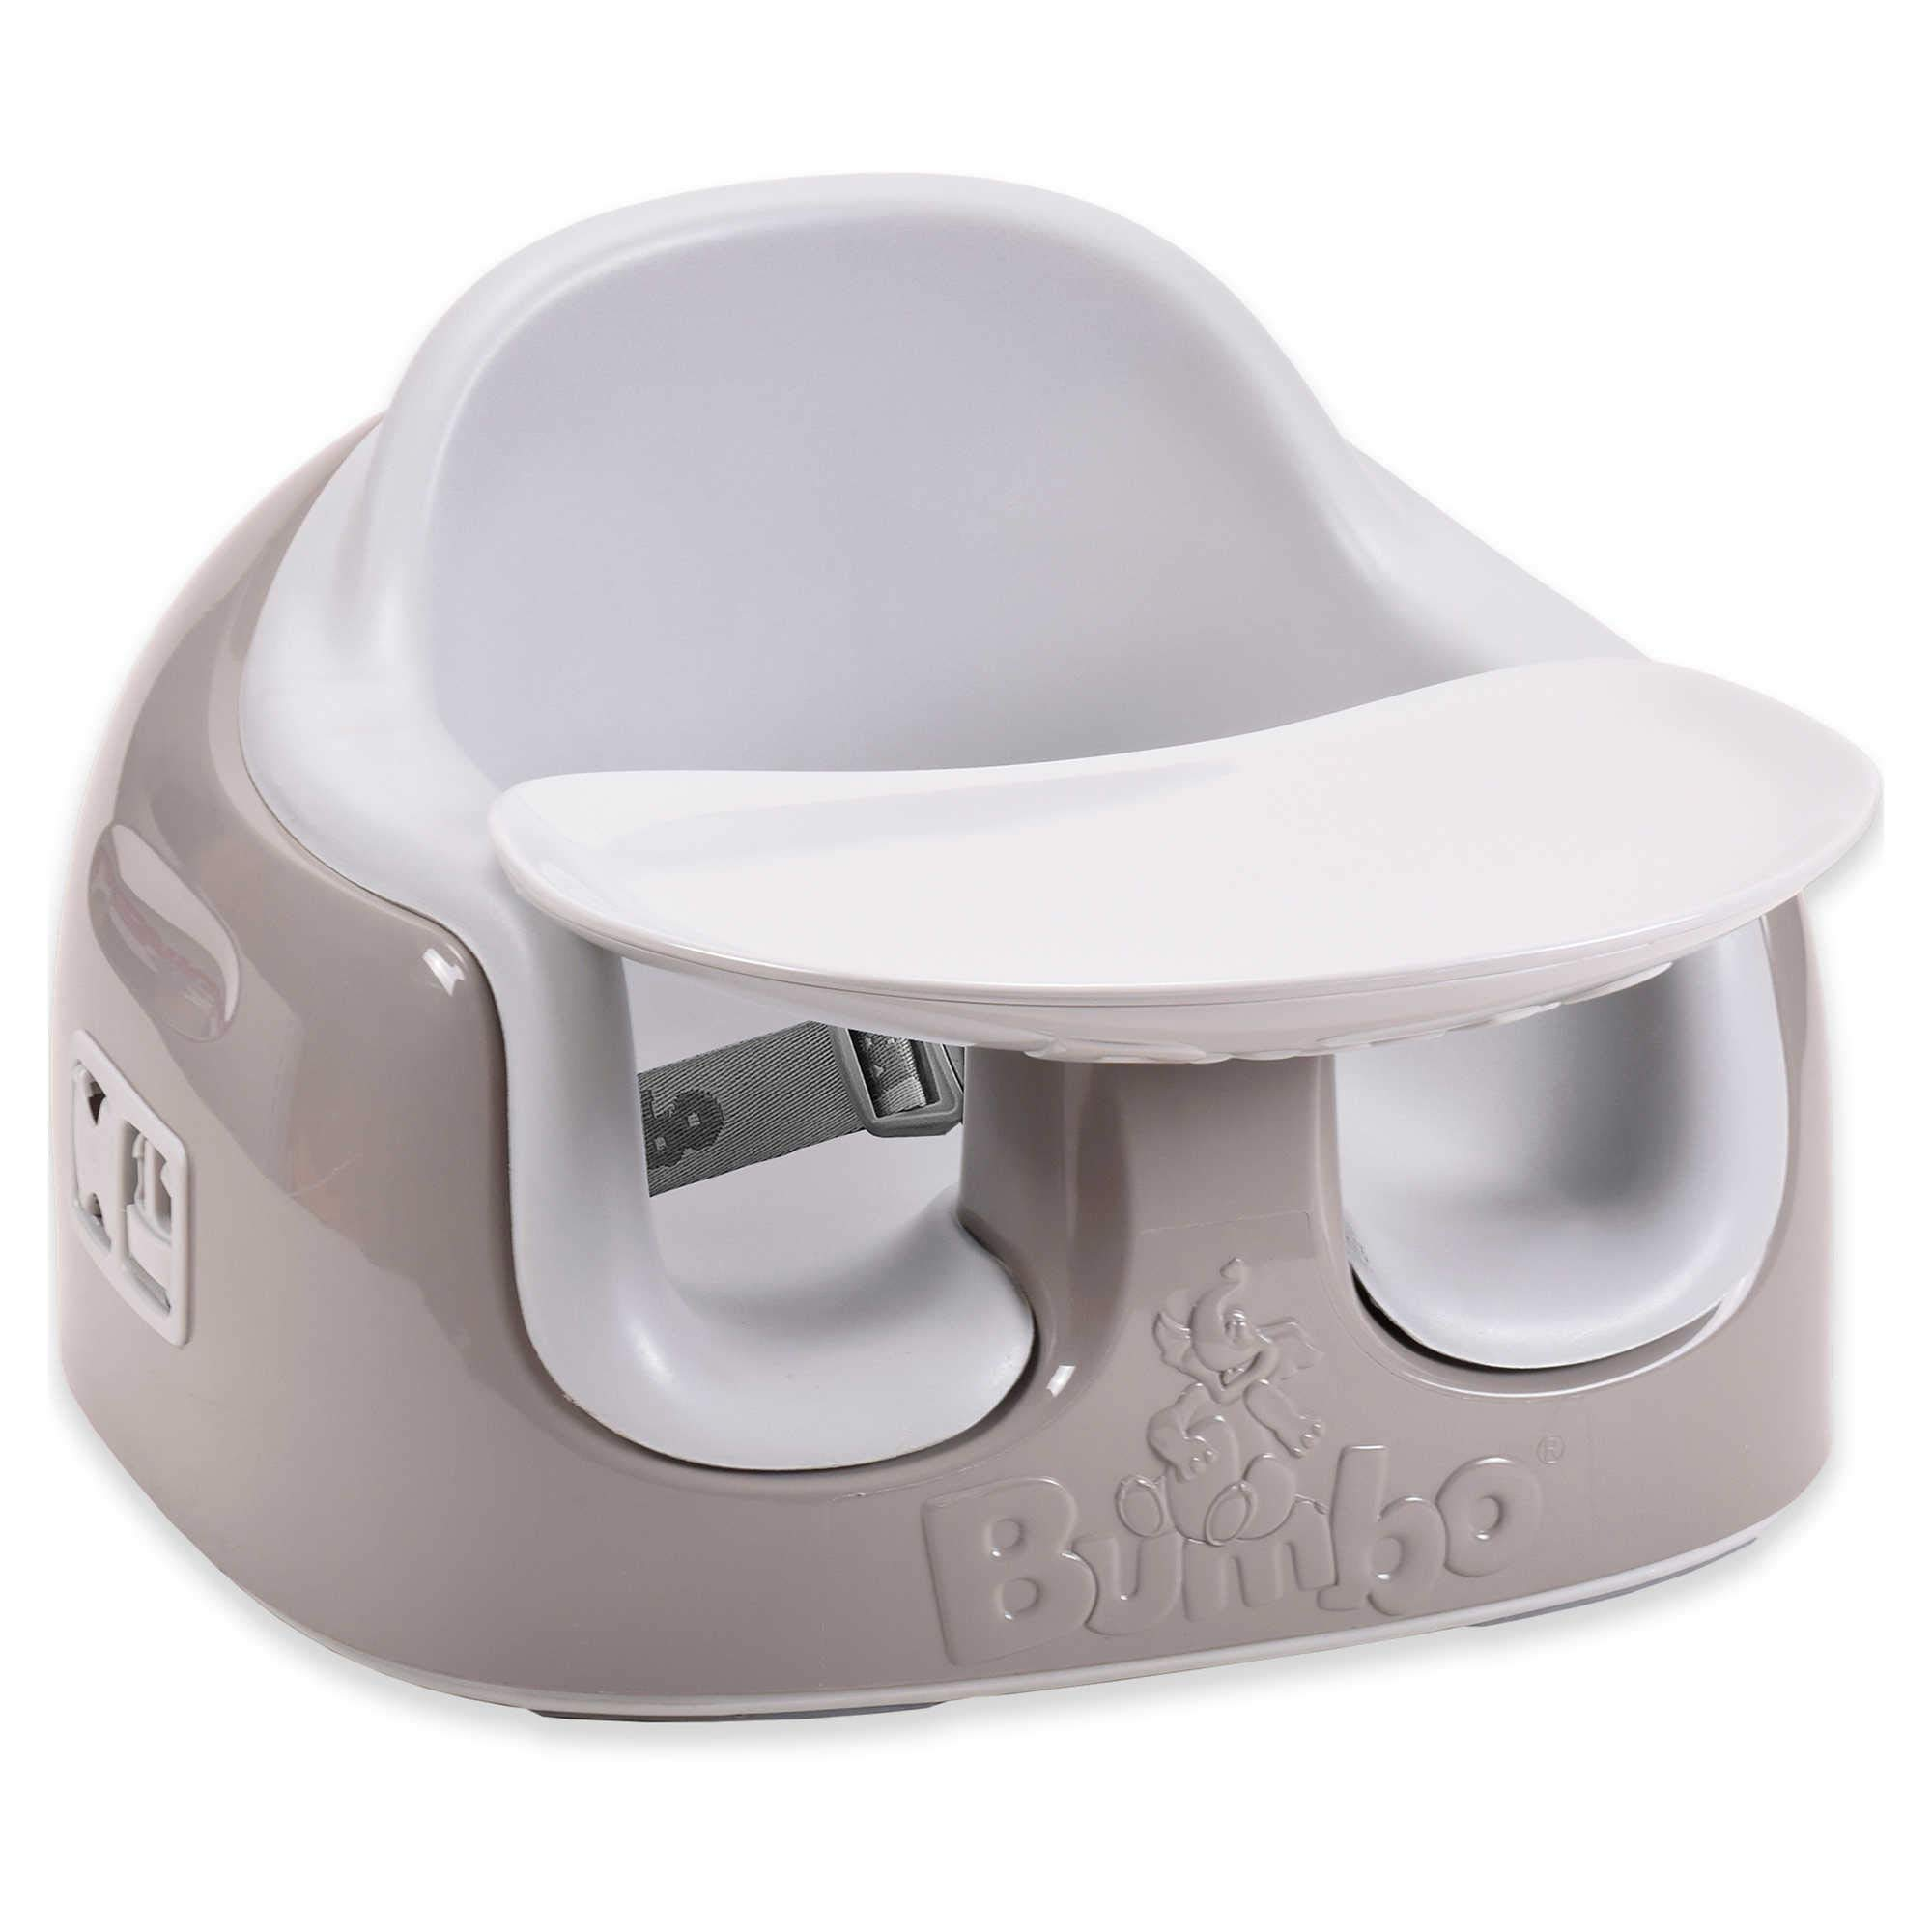 Bumbo 3-in-1 Multi Seat in Beige/Cool Grey by Bumbo